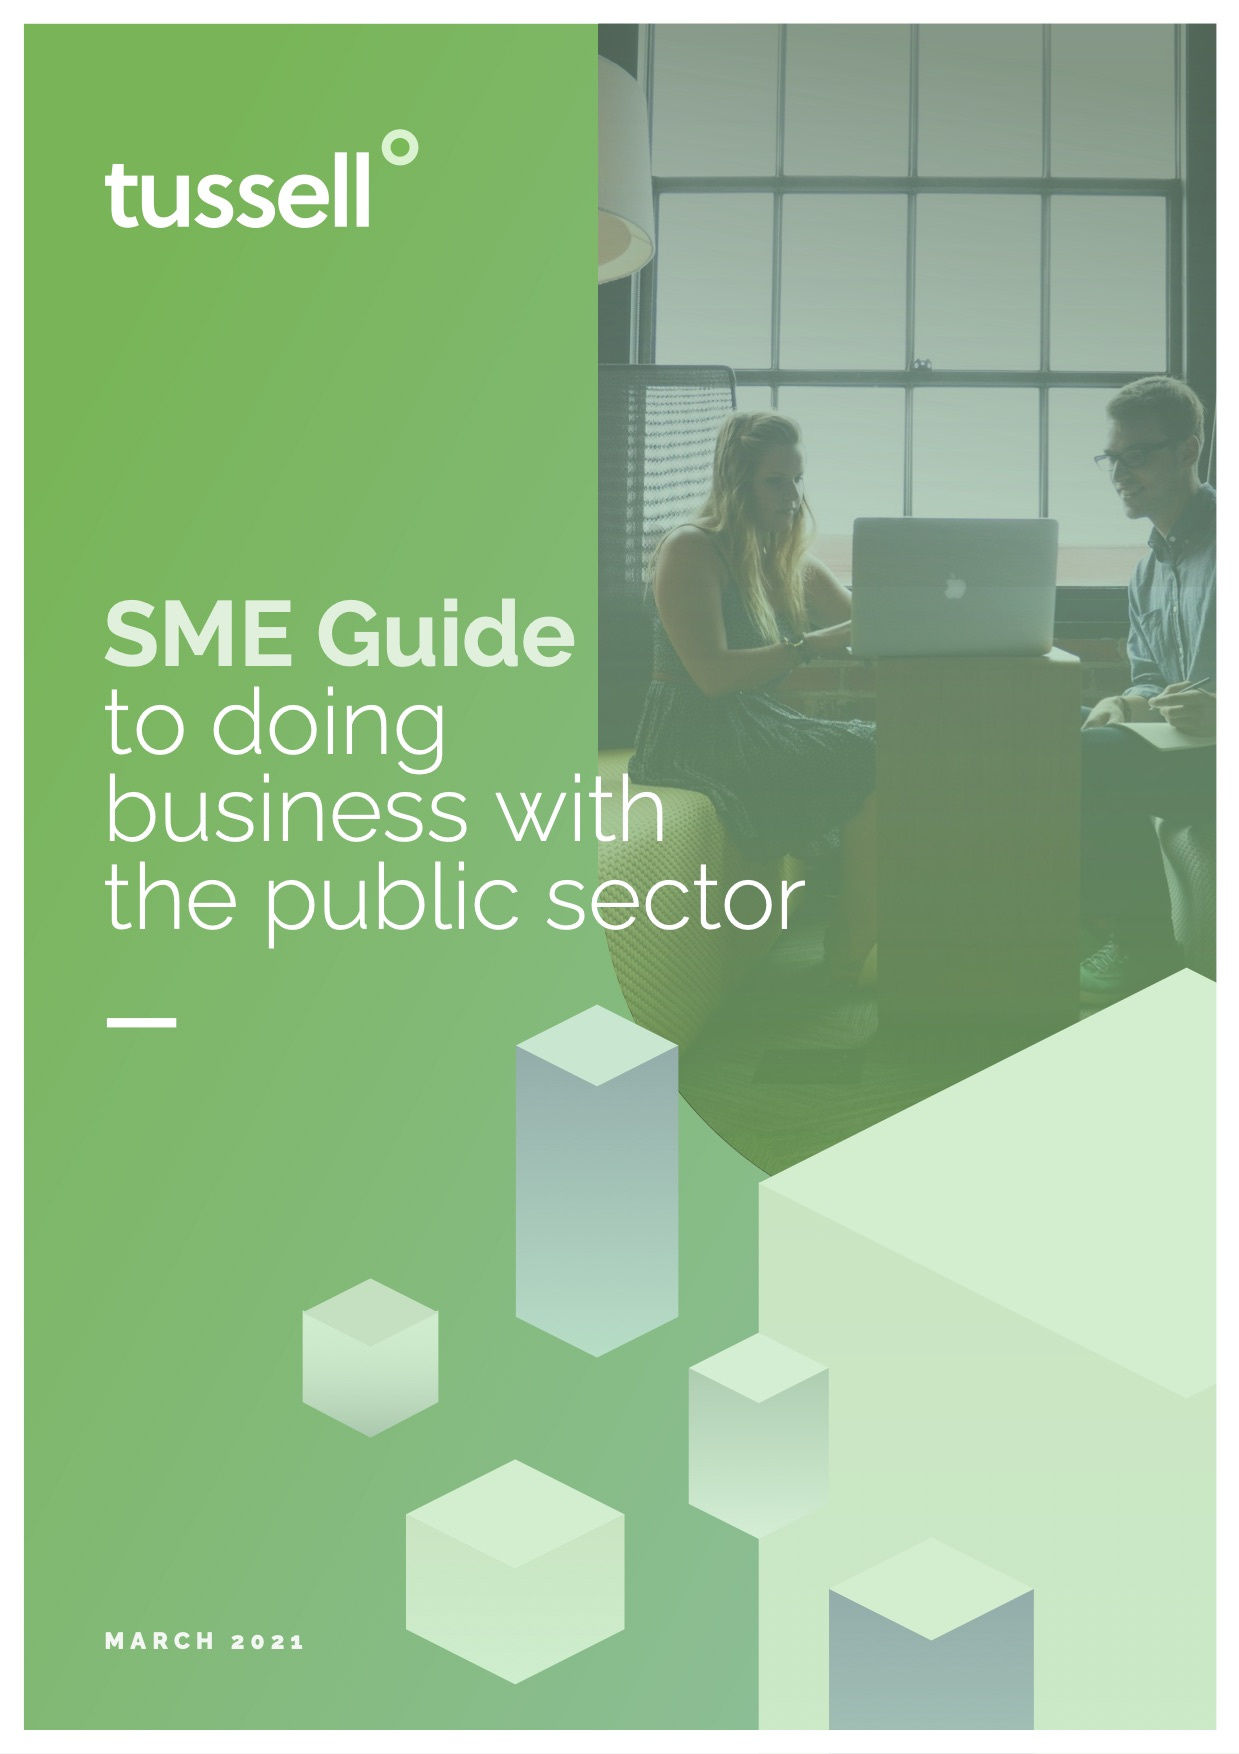 Tussell-SME-Guide-To-Doing-Business-With-The-Public-Sector-28032021_LJ-2